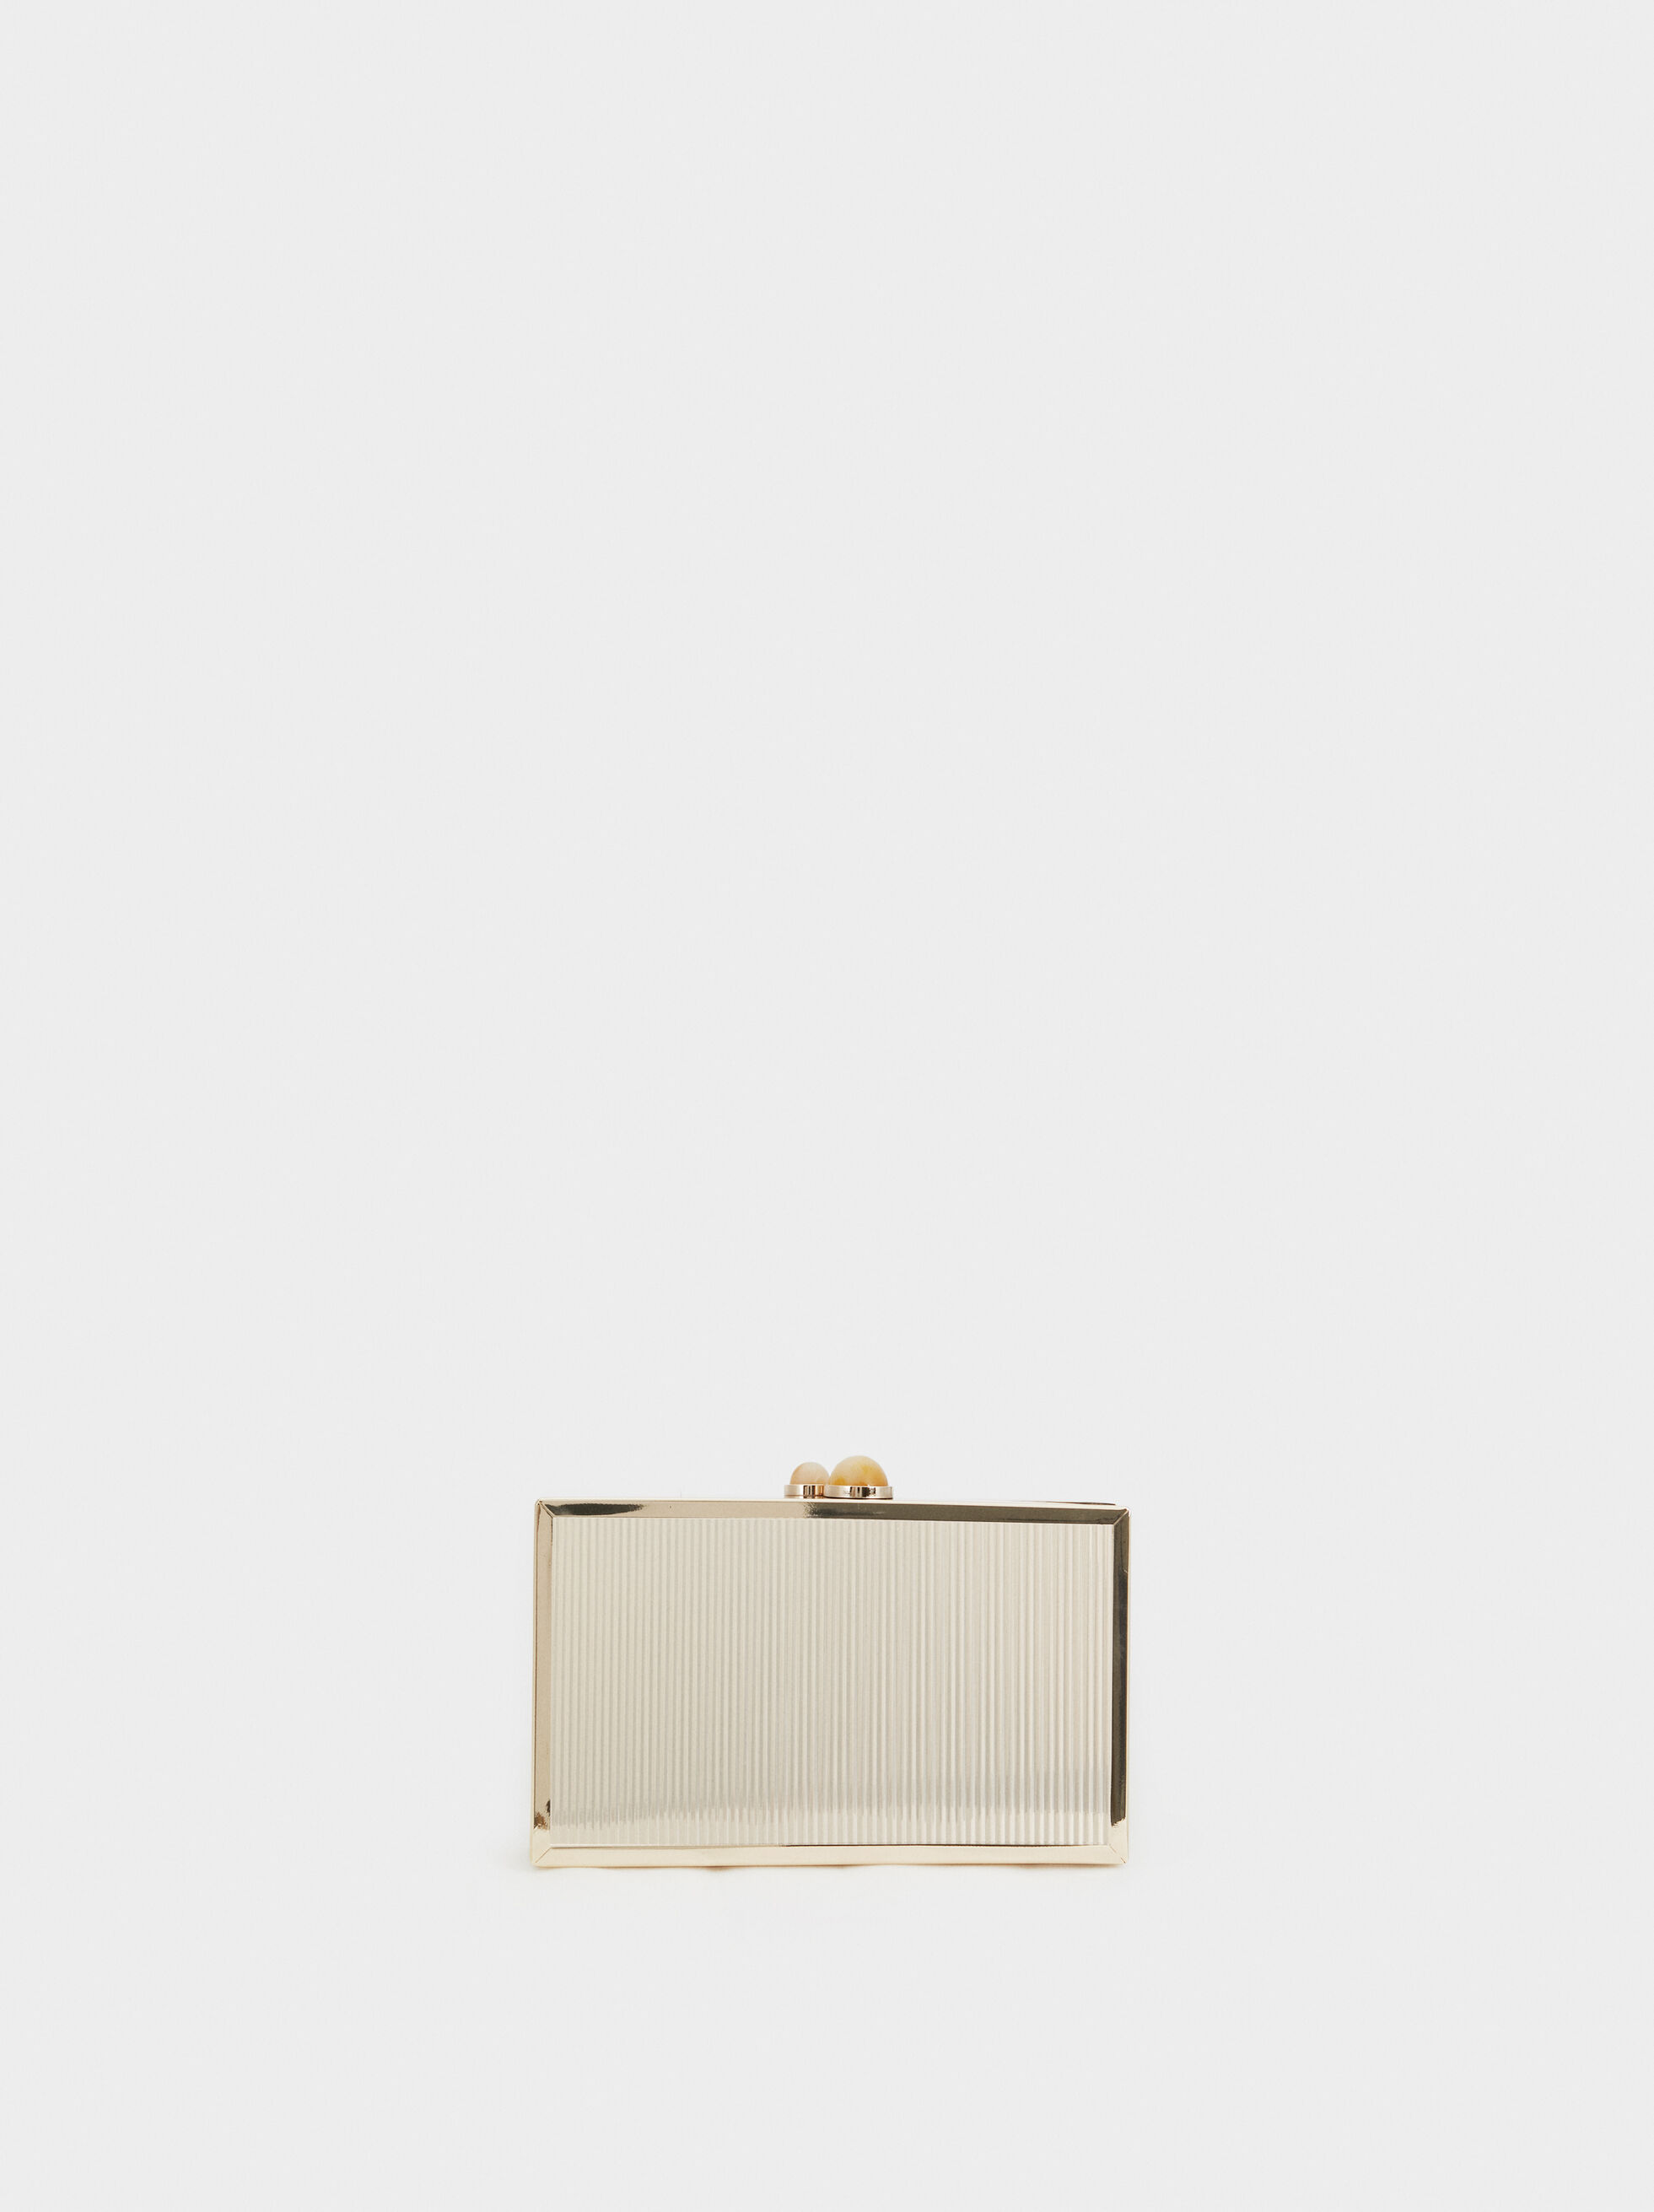 Metallic Party Clutch, Golden, hi-res